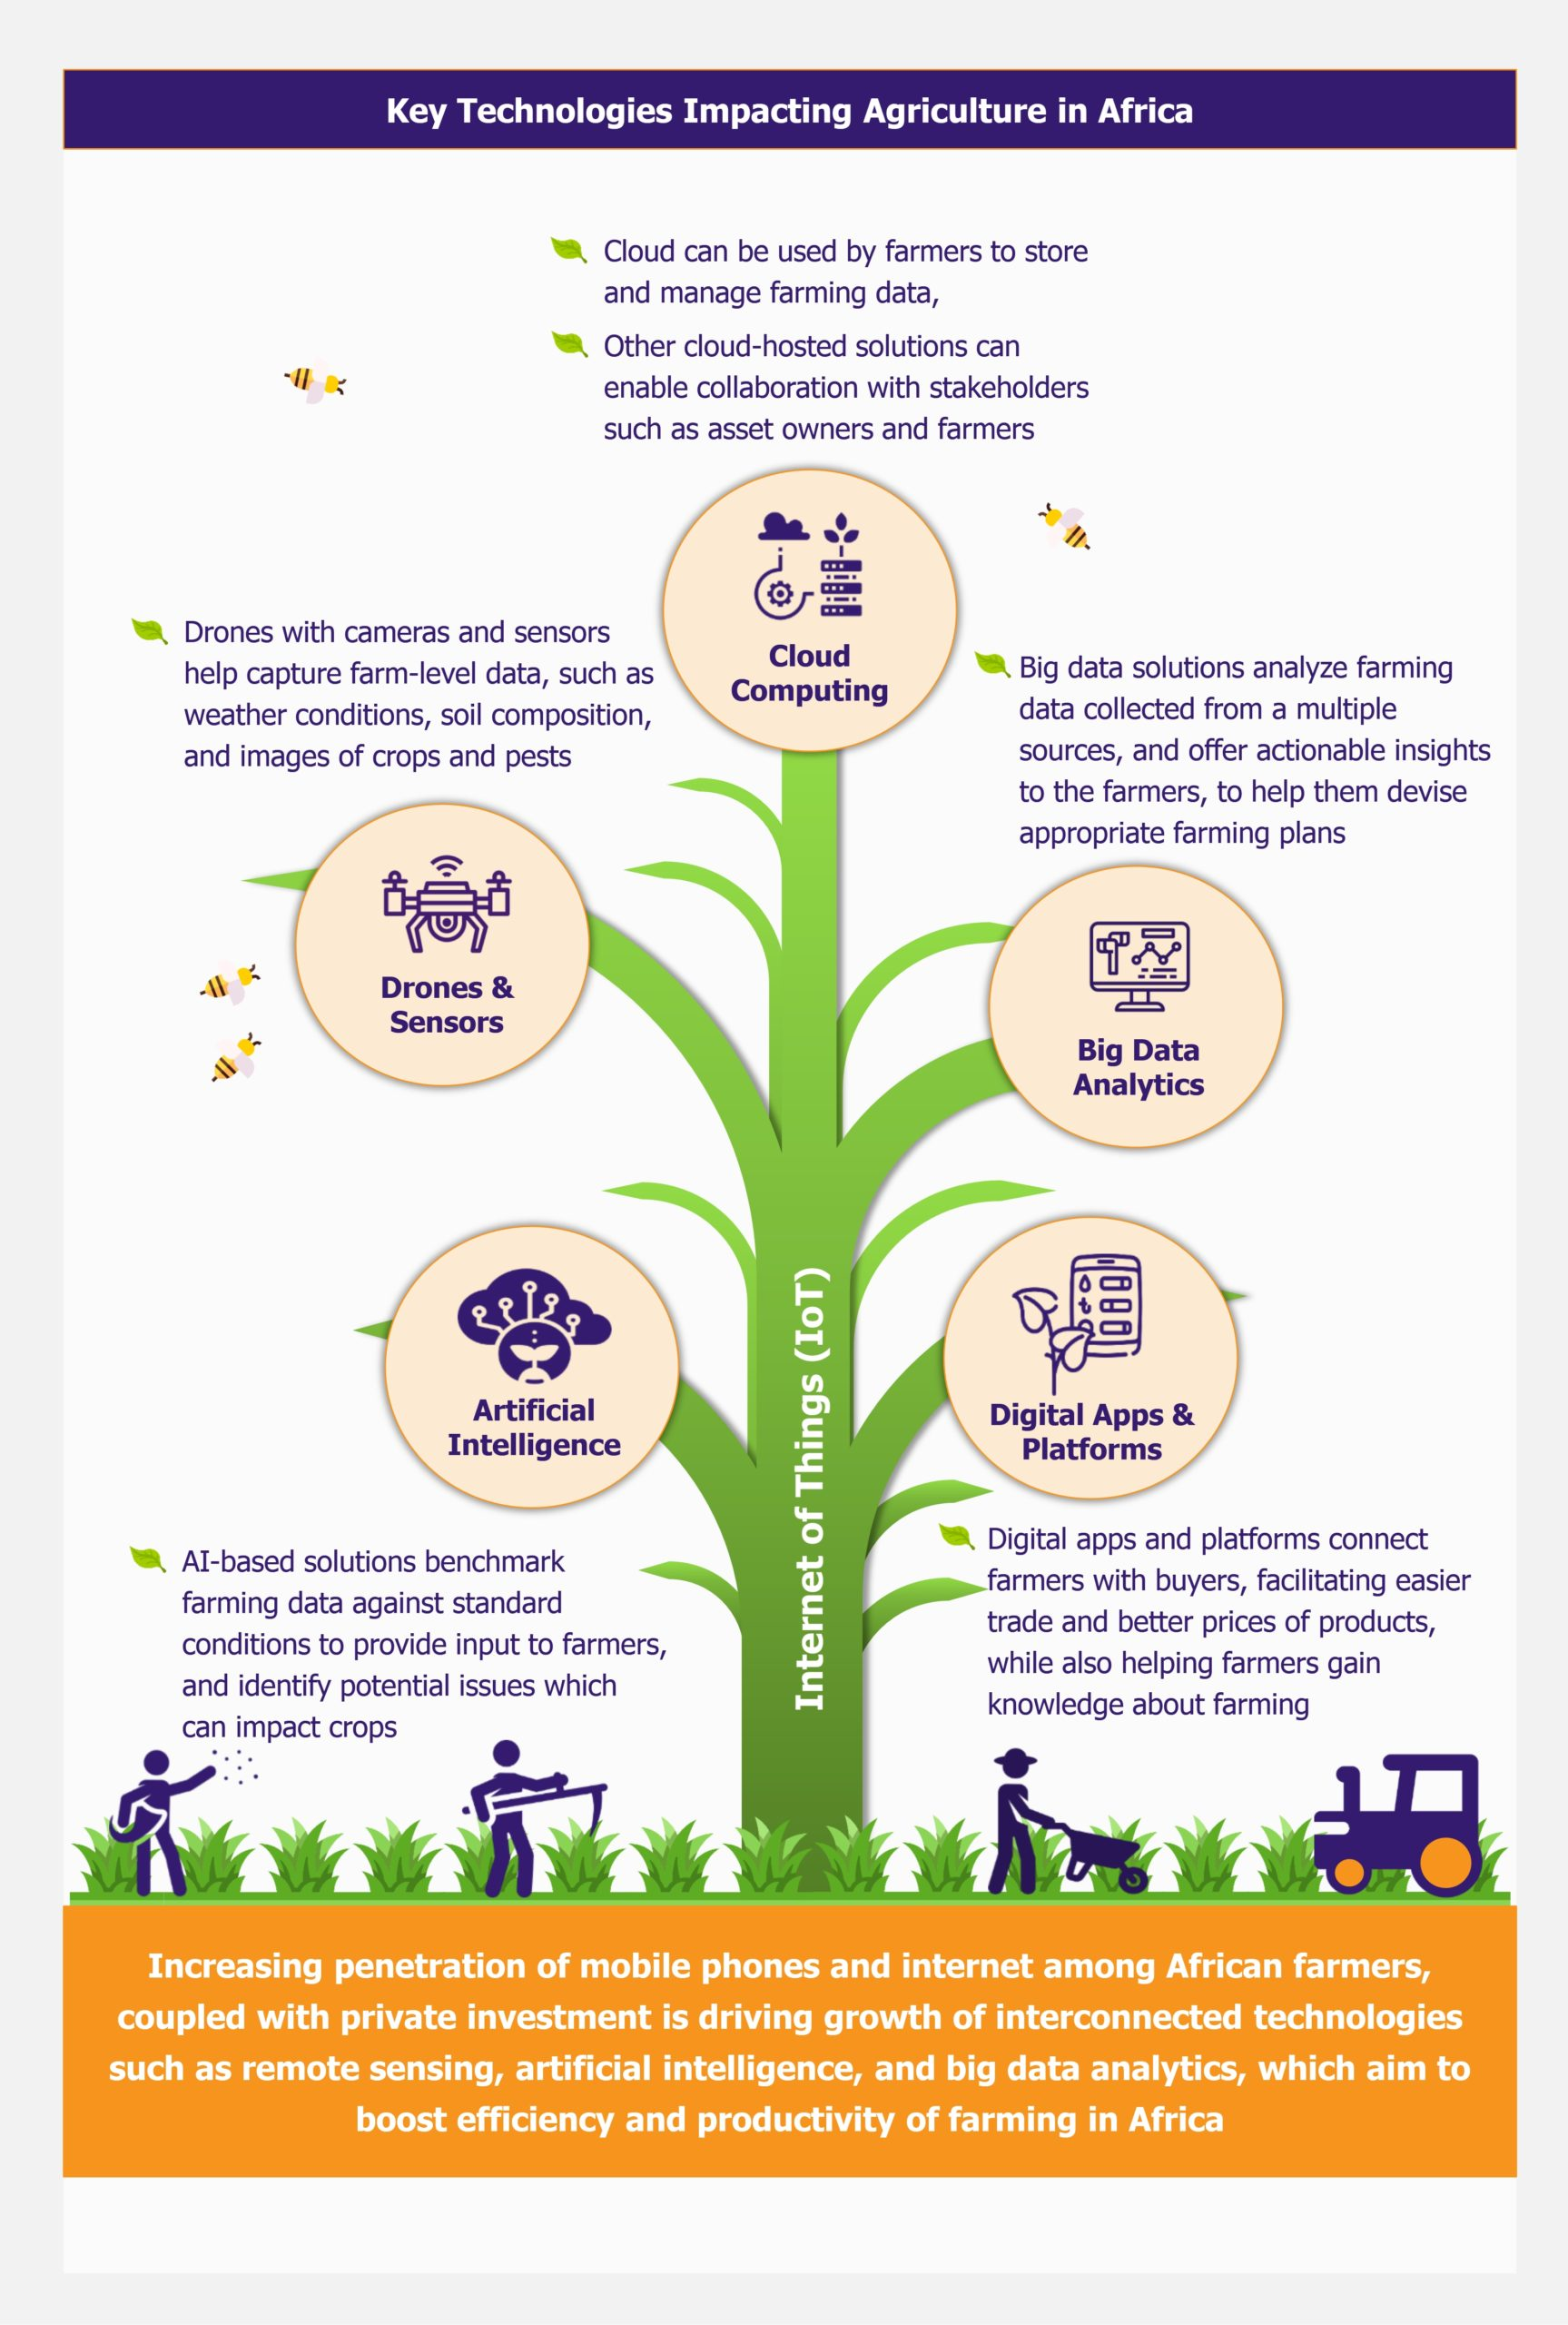 Agritech in Africa - Cultivating Opportunities for ICT in Agriculture by EOS Intelligence